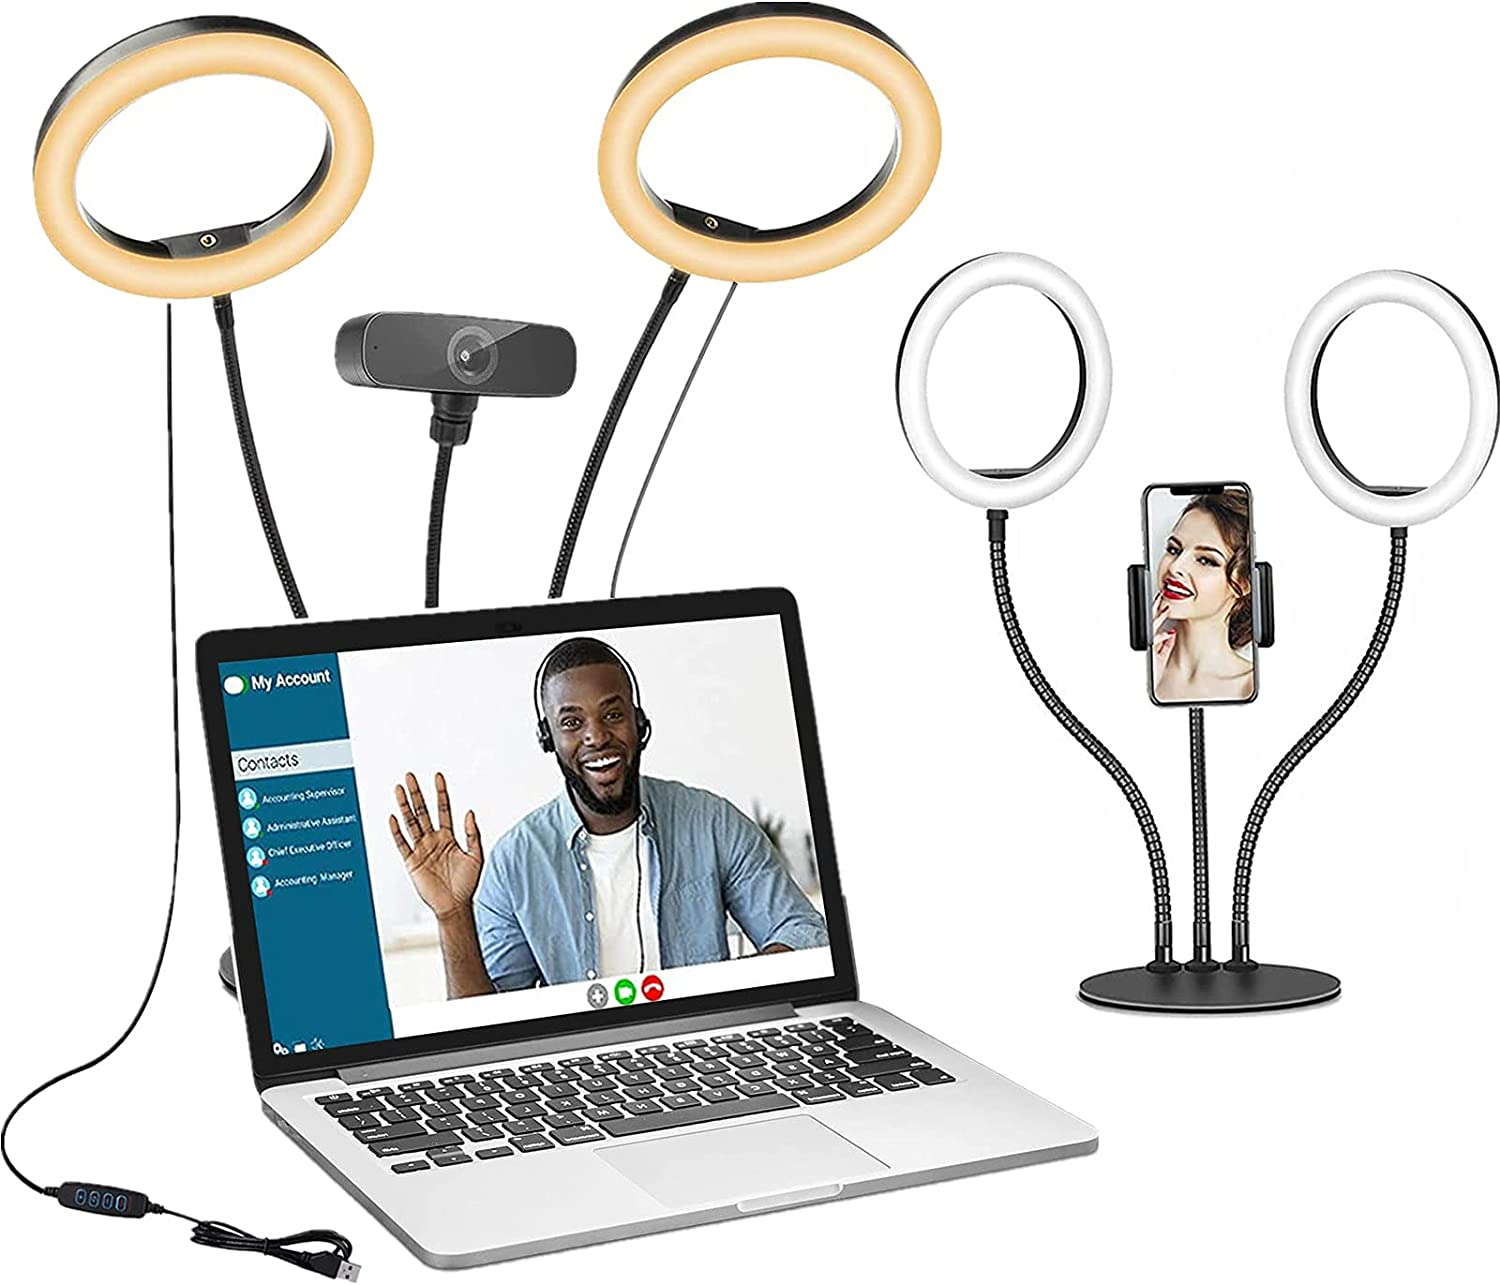 Computer Selfie Ring Light for Video Conference Recording, Dual 8'' Desktop Circle Light with Phone Holder for Laptop Webcam Lighting, Photo, Makeup, Zoom Meeting, Video Call, YouTube, TiKtok